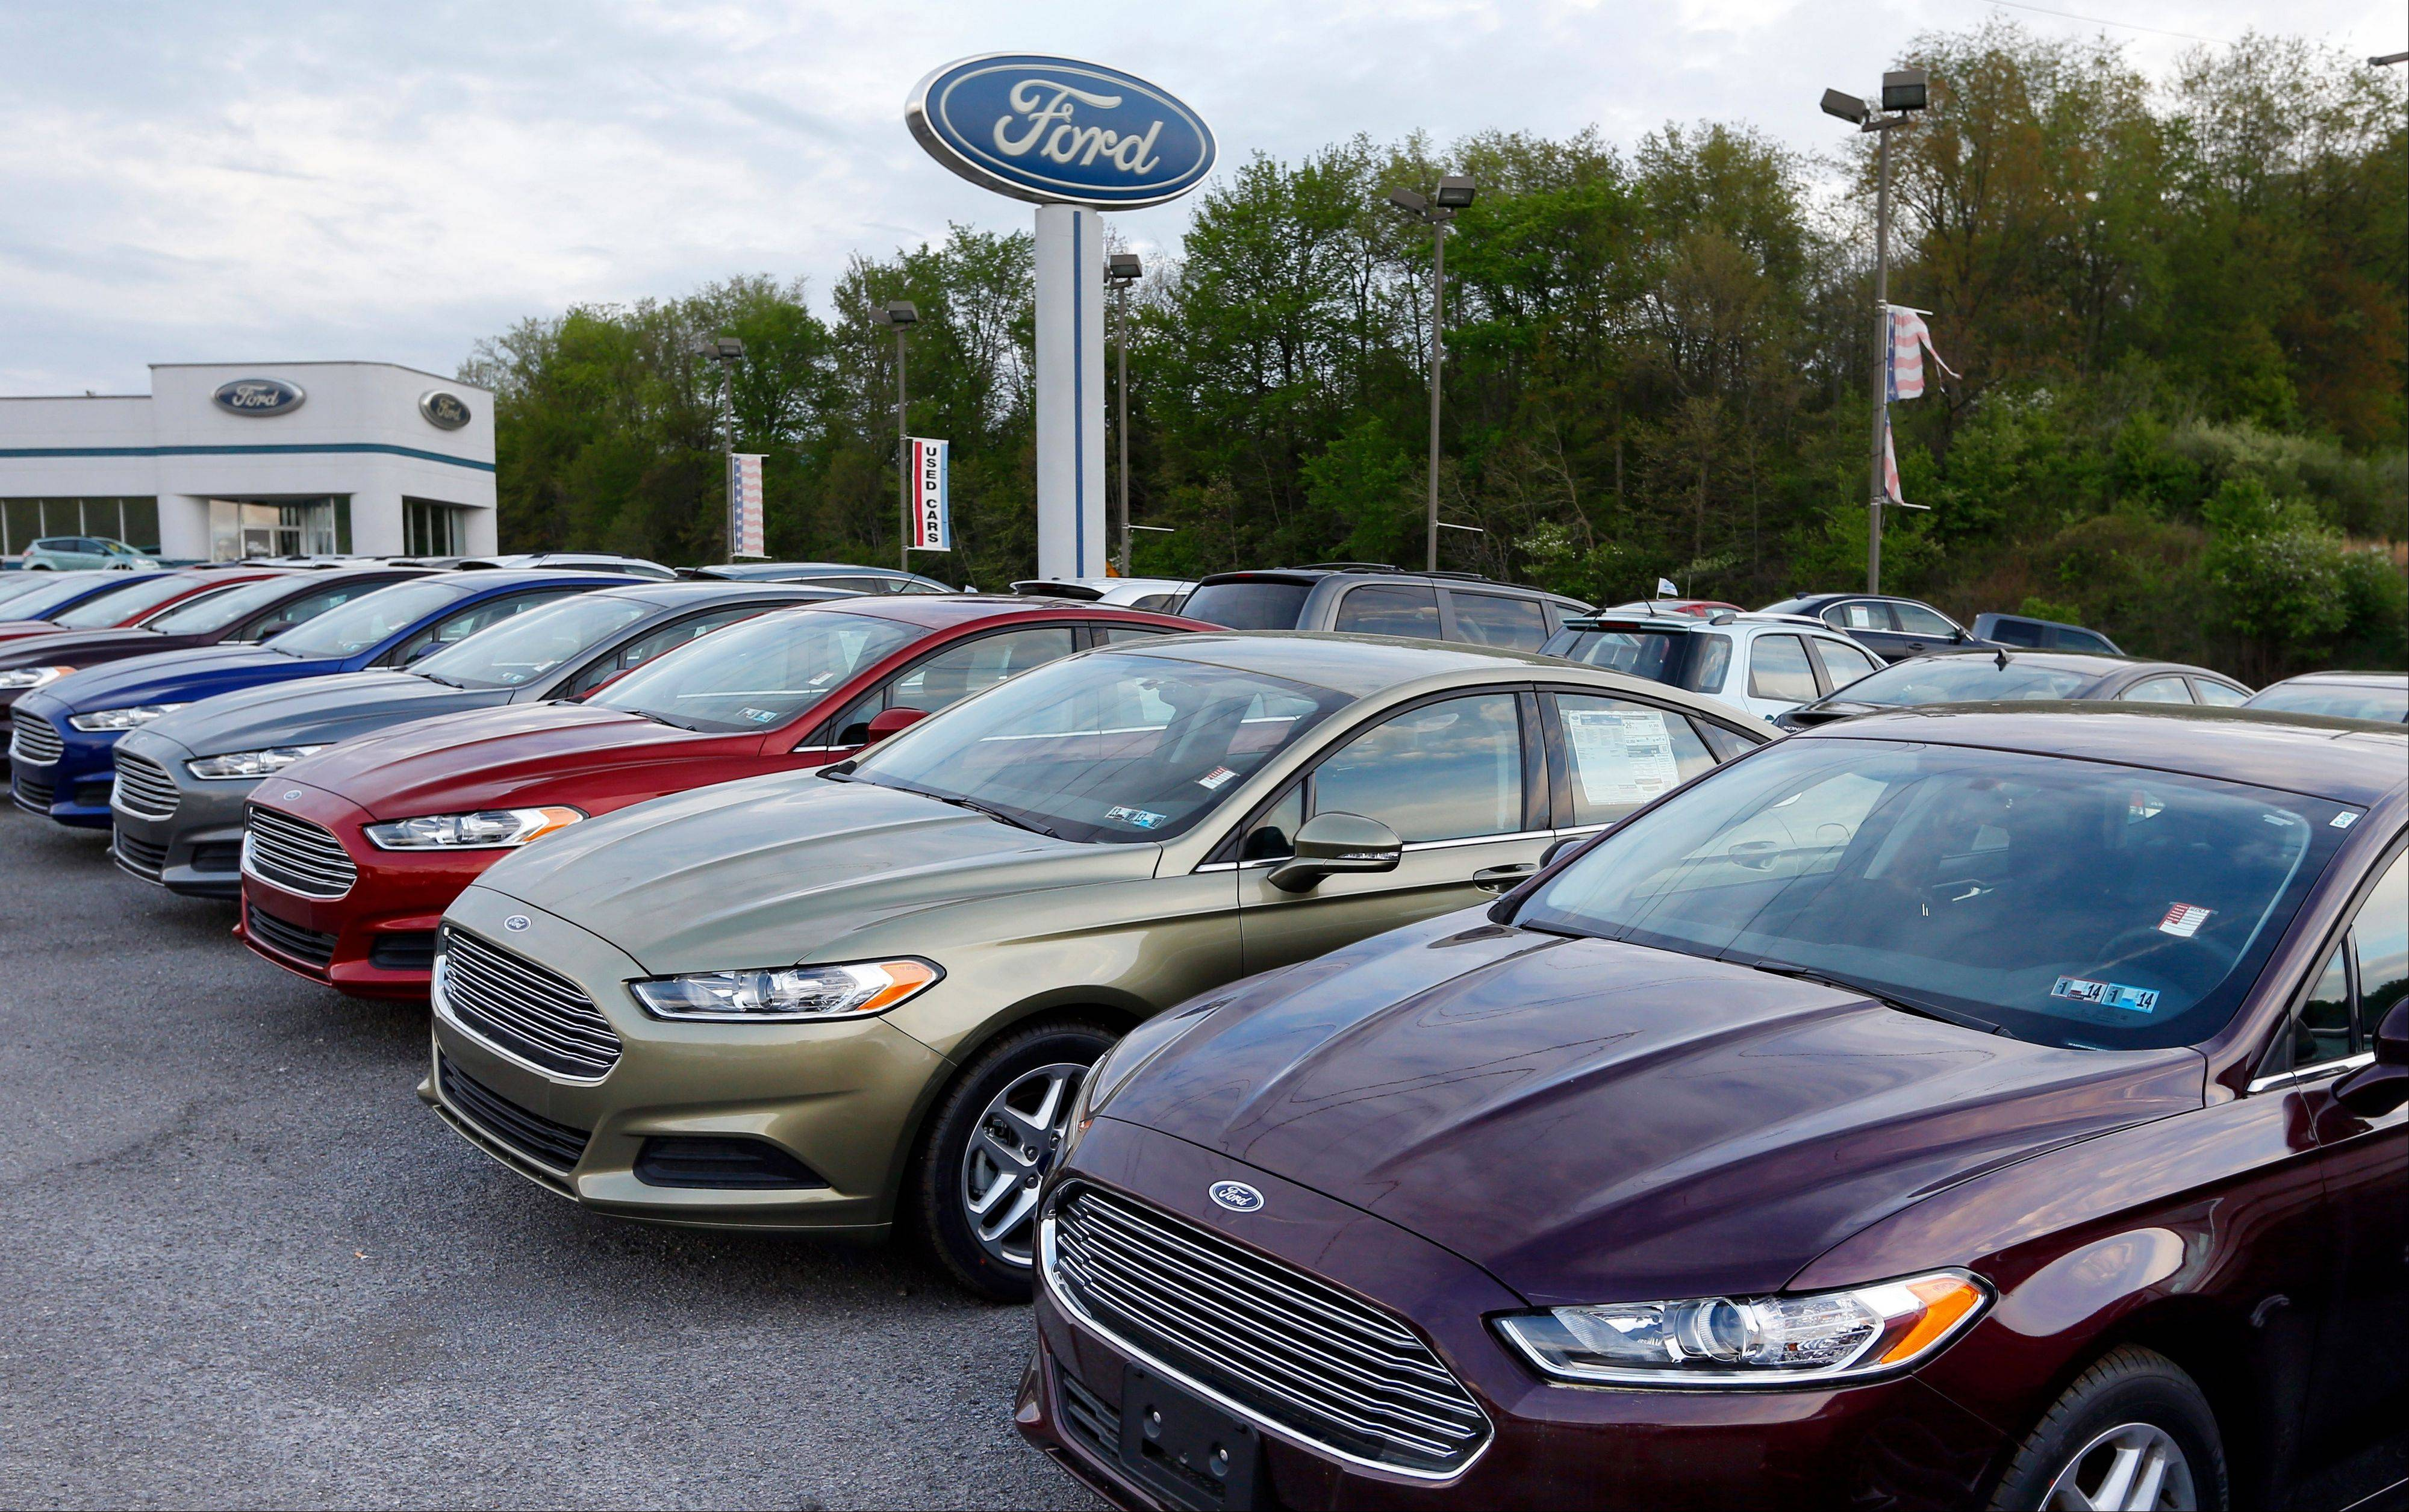 New 2013 Ford Fusions at an automobile dealer in Zelienople, Pa. U.S. buyers snapped up new cars and trucks in June at a pace not seen since before the recession. Continuing demand for big pickups helped boost sales for Detroit's automakers. Ford said Tuesday that its sales rose 14 percent,